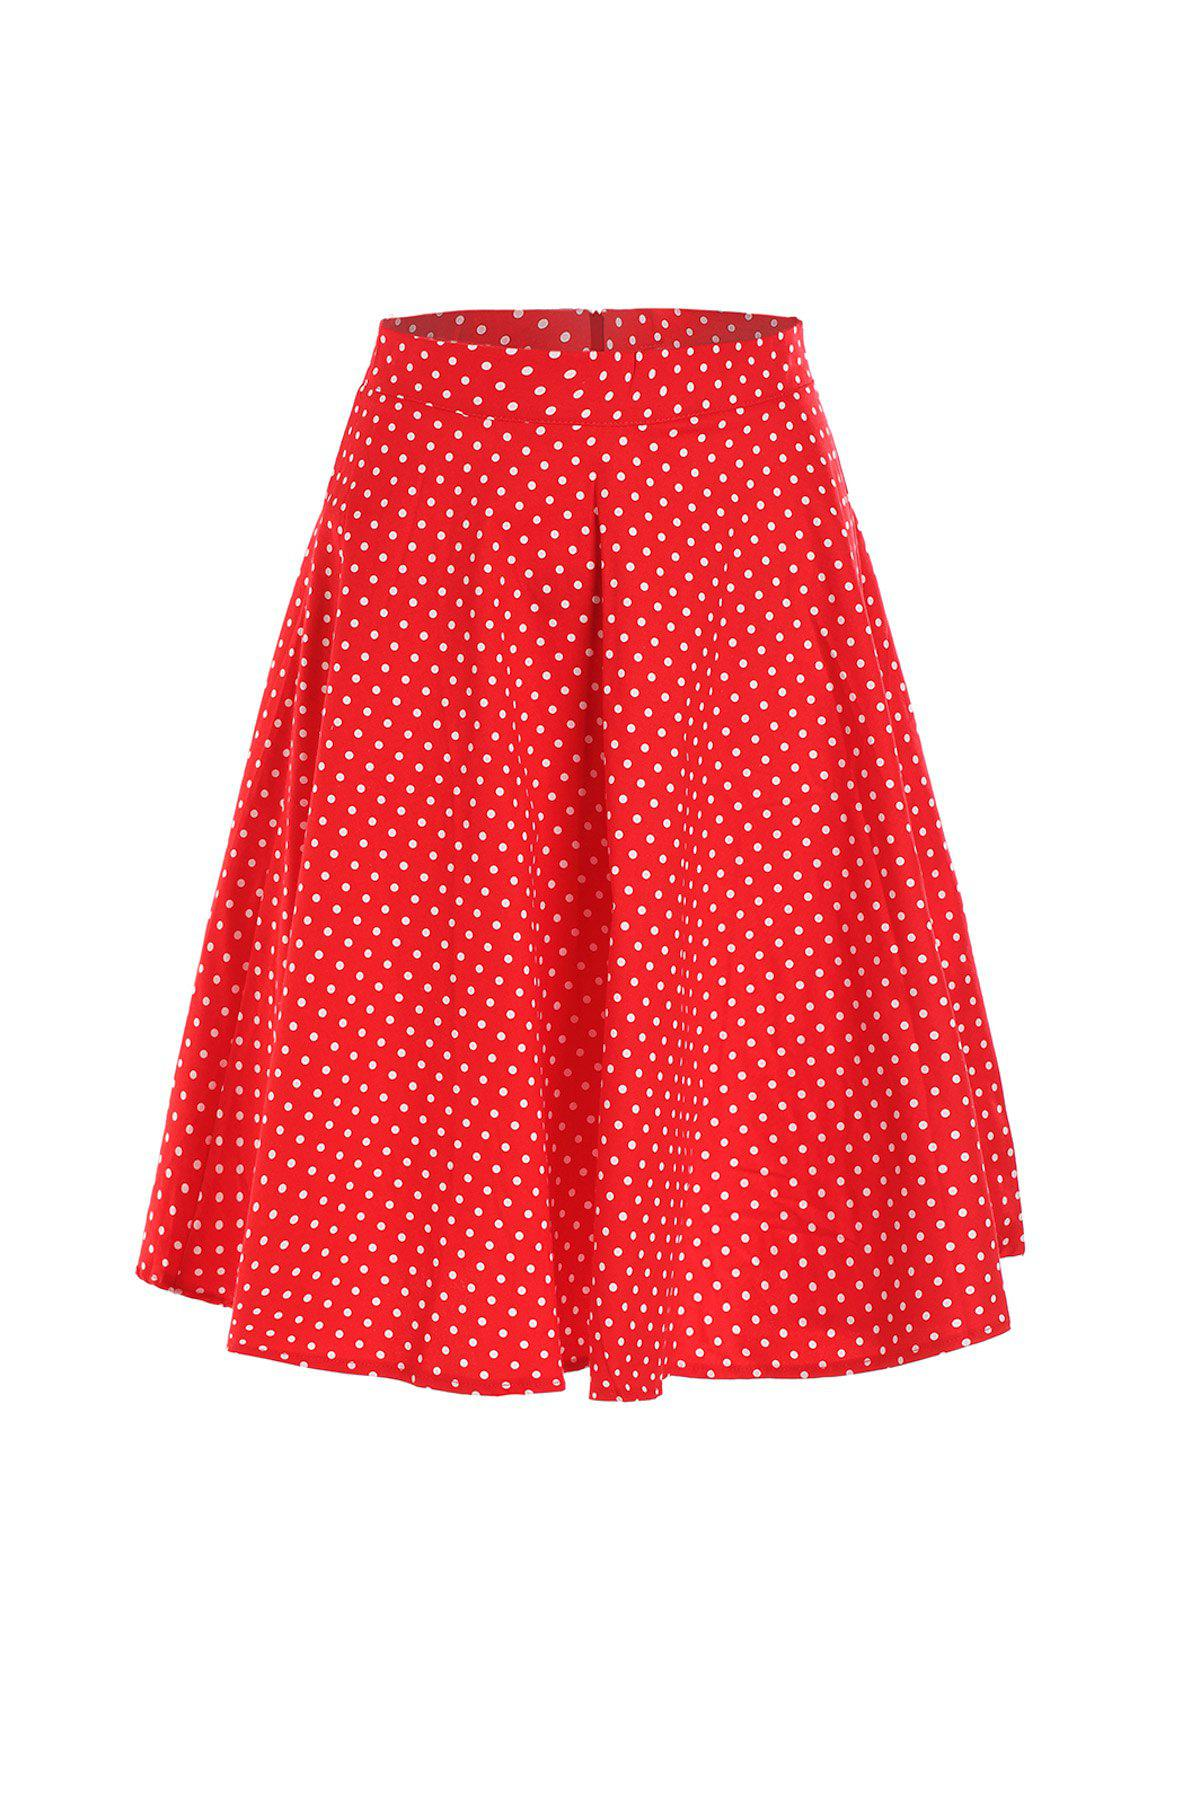 Charming Polka Dot Printed High Waist Ball Skirt For Women - S RED